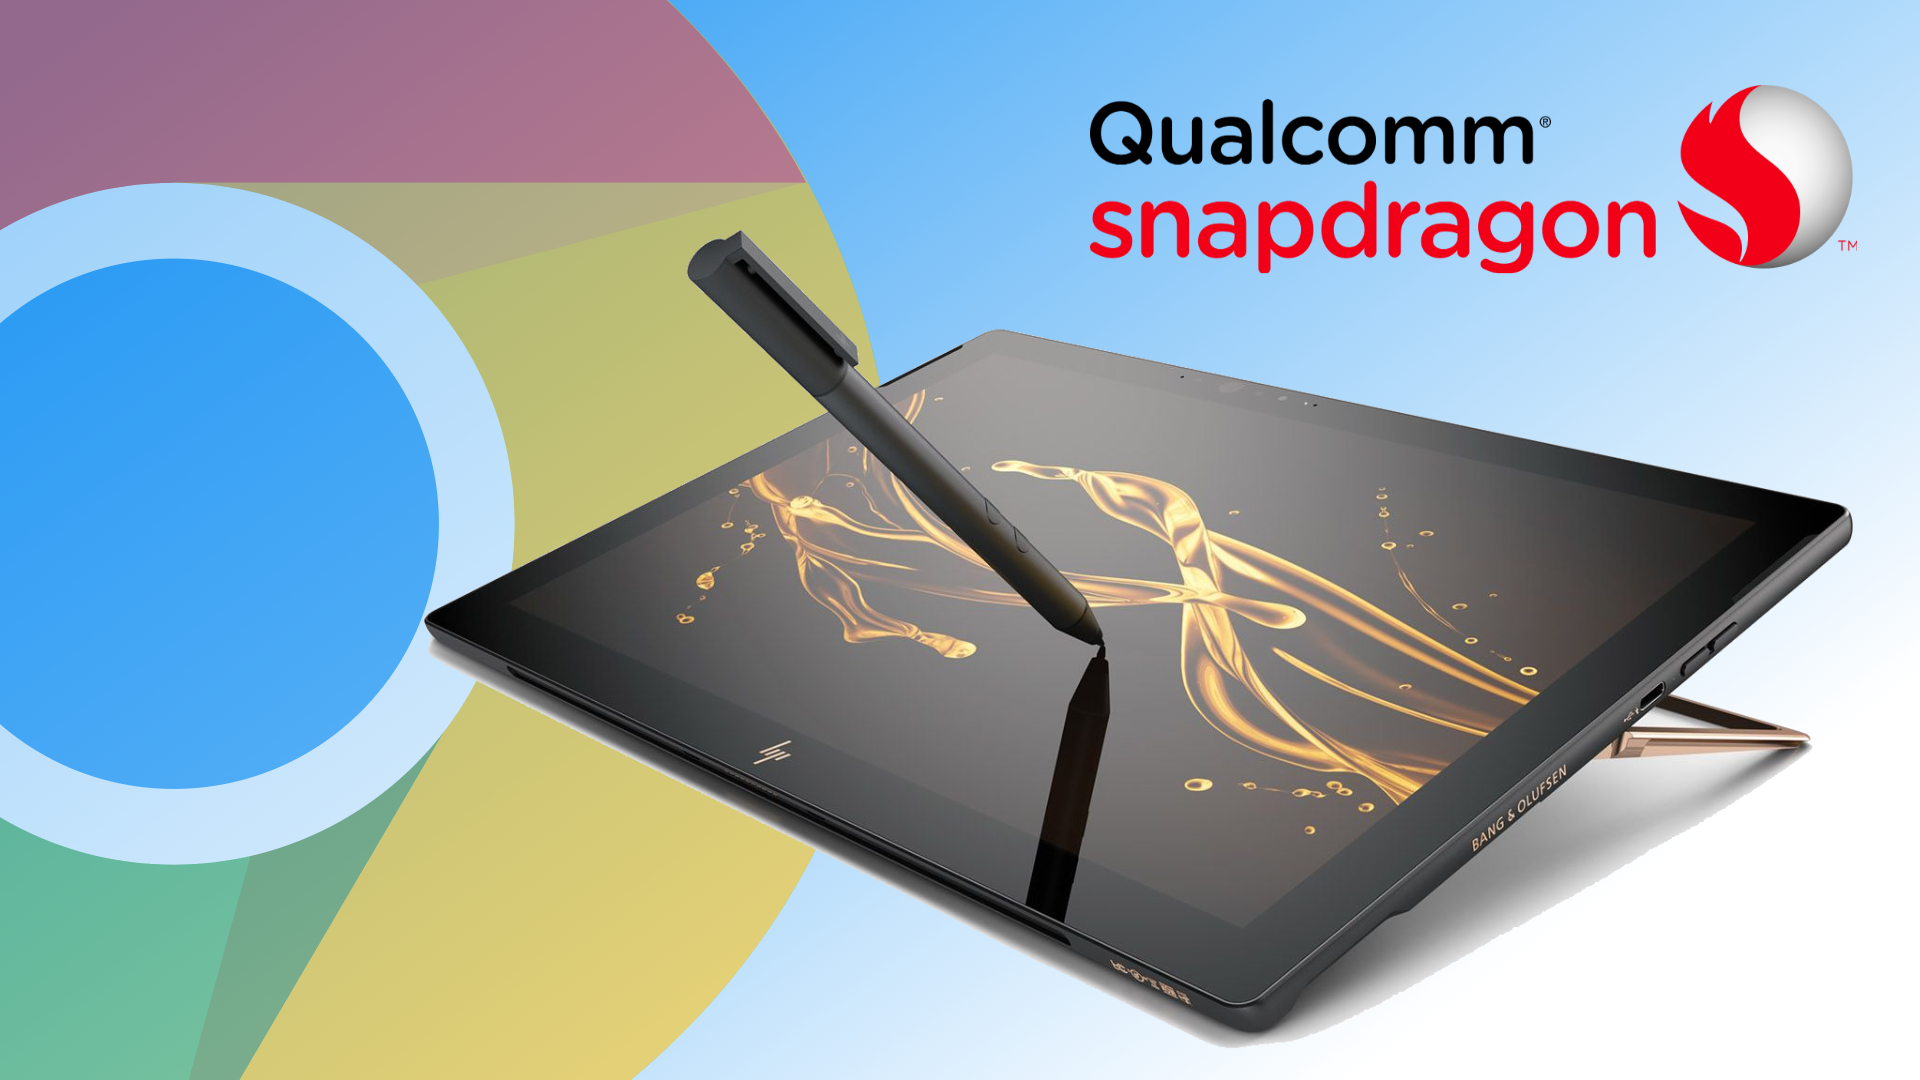 Snapdragon 7c Chromebook tablet 'Coachz' shows fast scores in Geekbench results